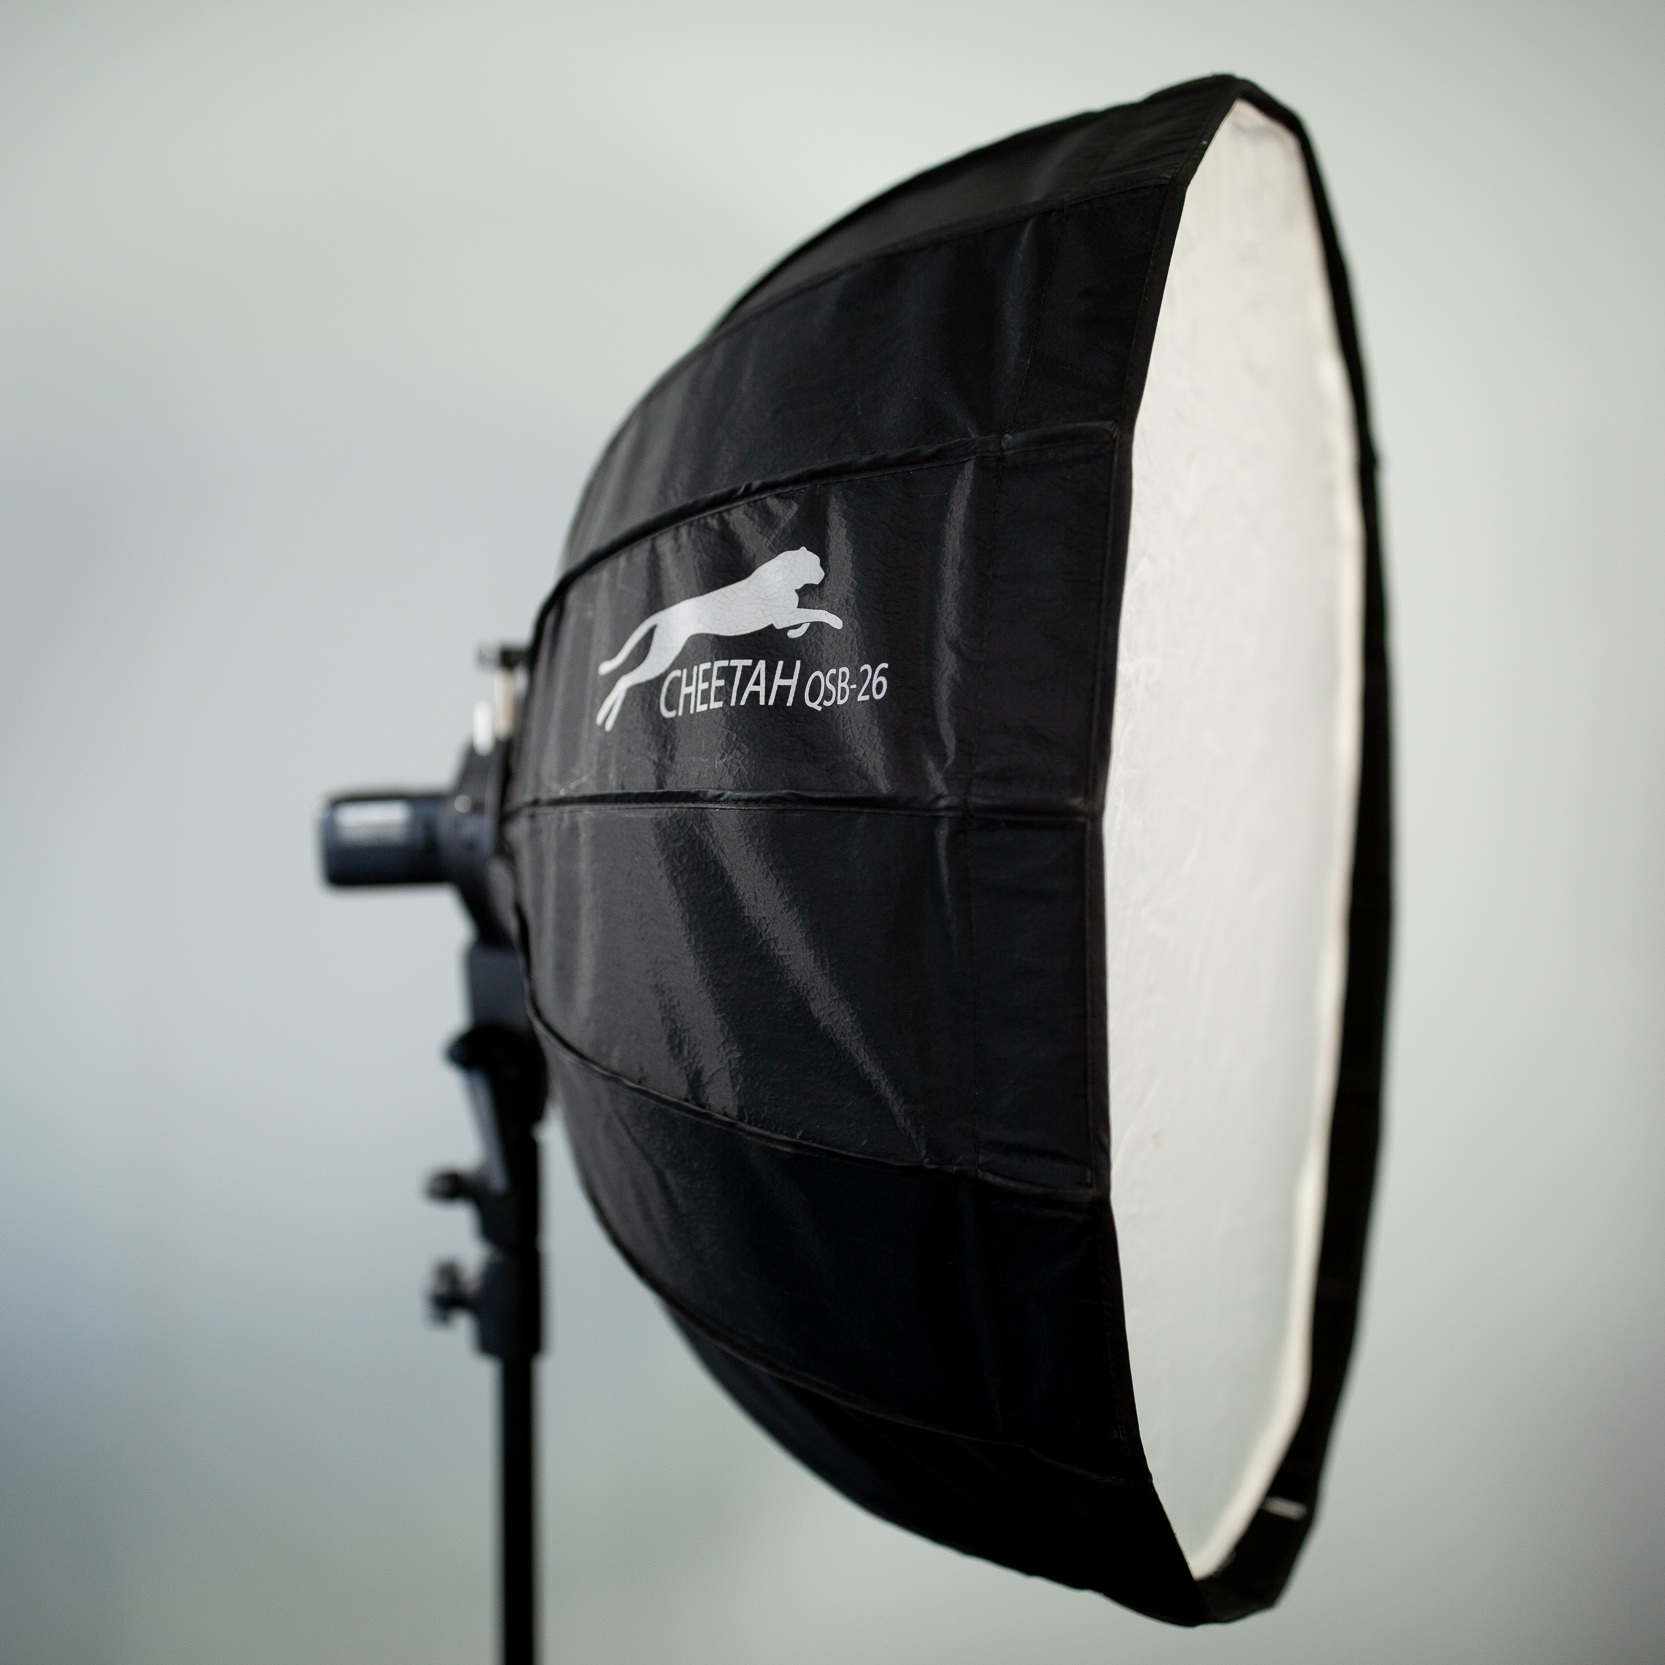 "Cheetah SoupBowl 26"" - The ""Soup Bowl"" is an affordable and most importantly, durable softbox from Cheetah.> Includes a grid and inner baffle, which you typically have to purchase separate with other soft boxes.> Available in every single mounting style, including Bowens!"